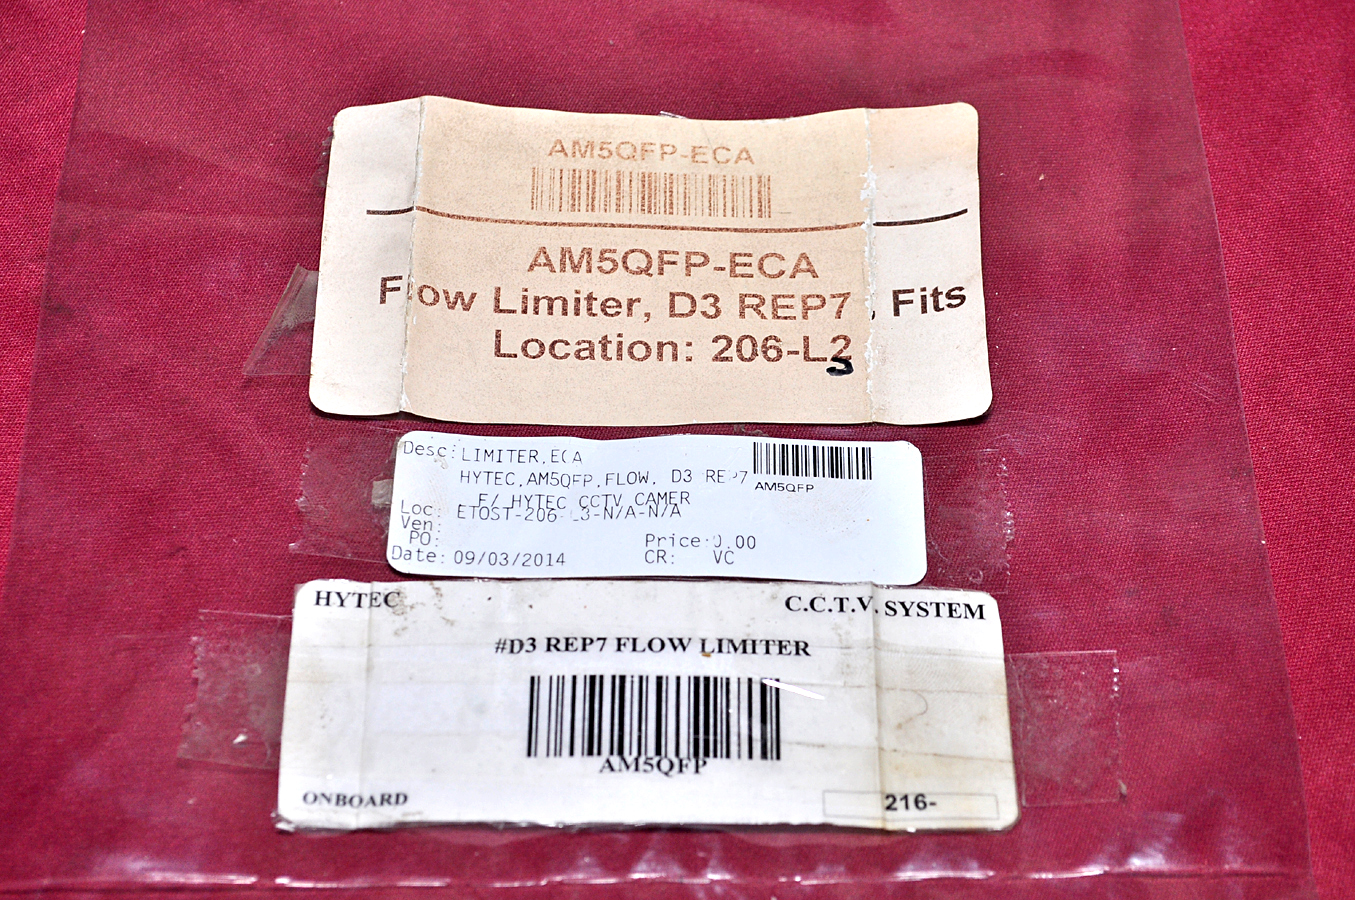 Aeliya Marine Tech Pvt Ltd | FLOW LIMITER  D3 REP7 , FITS